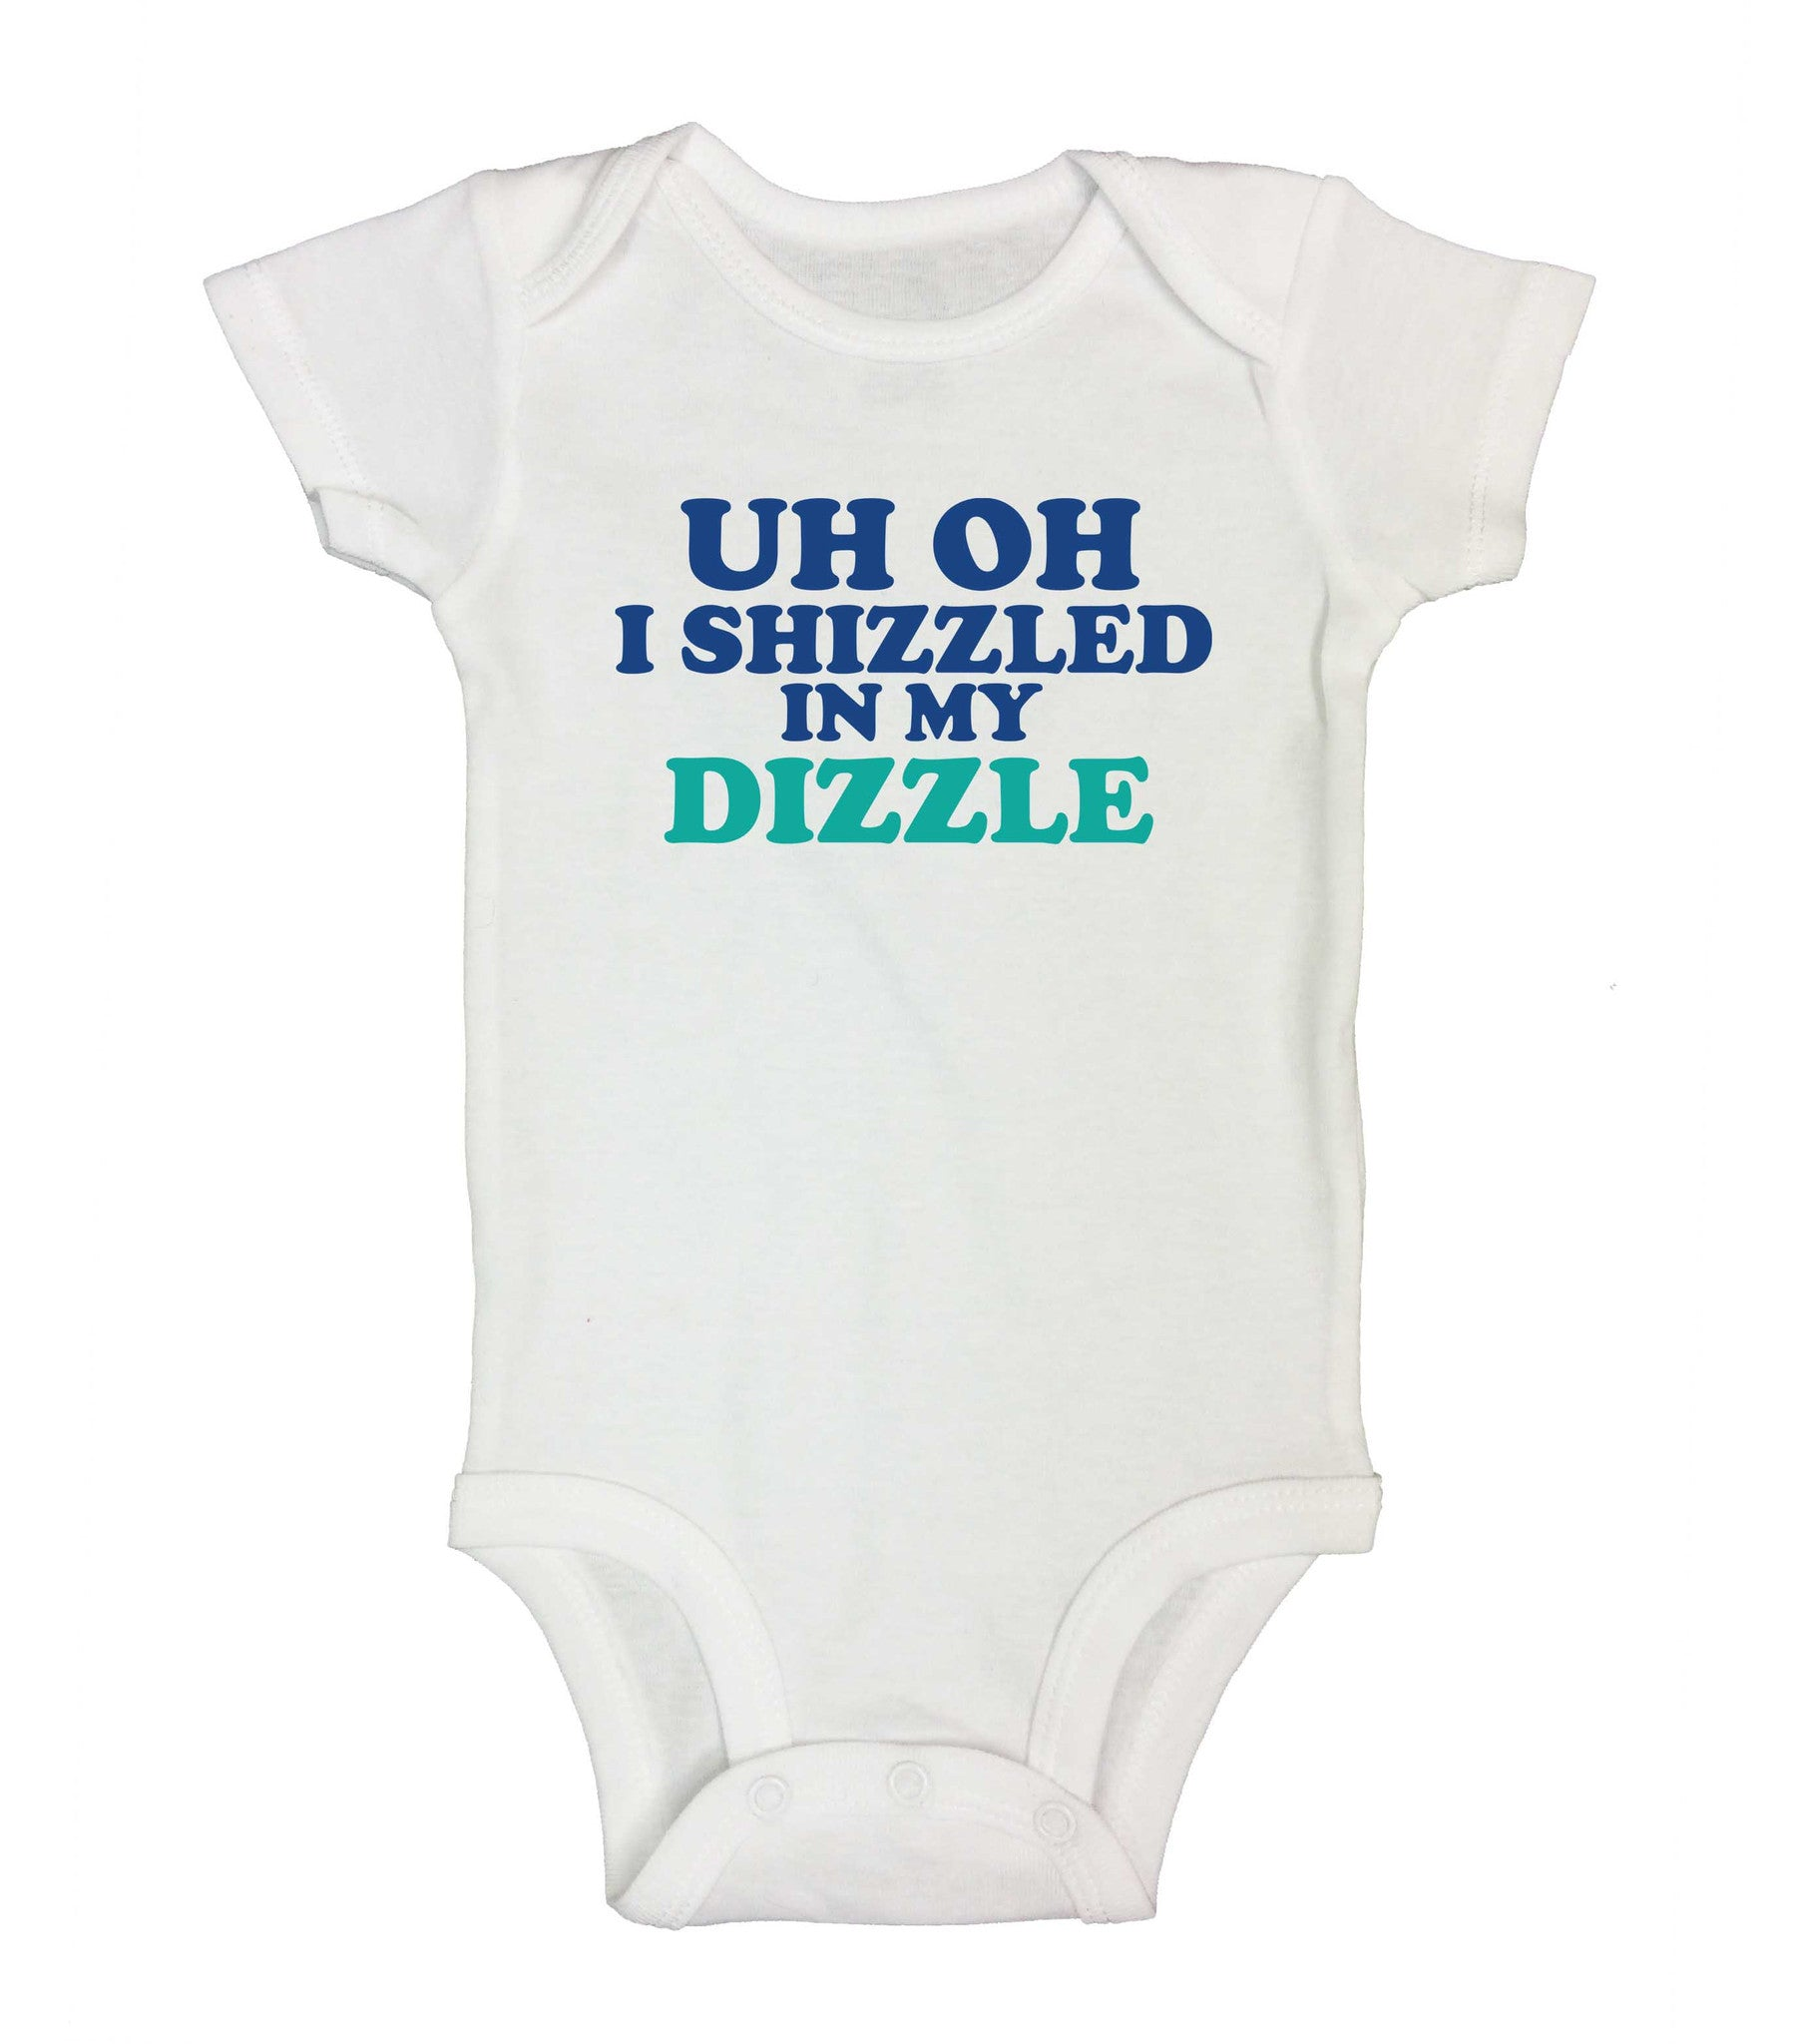 Uh Oh I Shizzled In My Dizzle Funny Kids Onesie - 219 - Funny Shirts Tank Tops Burnouts and Triblends  - 2